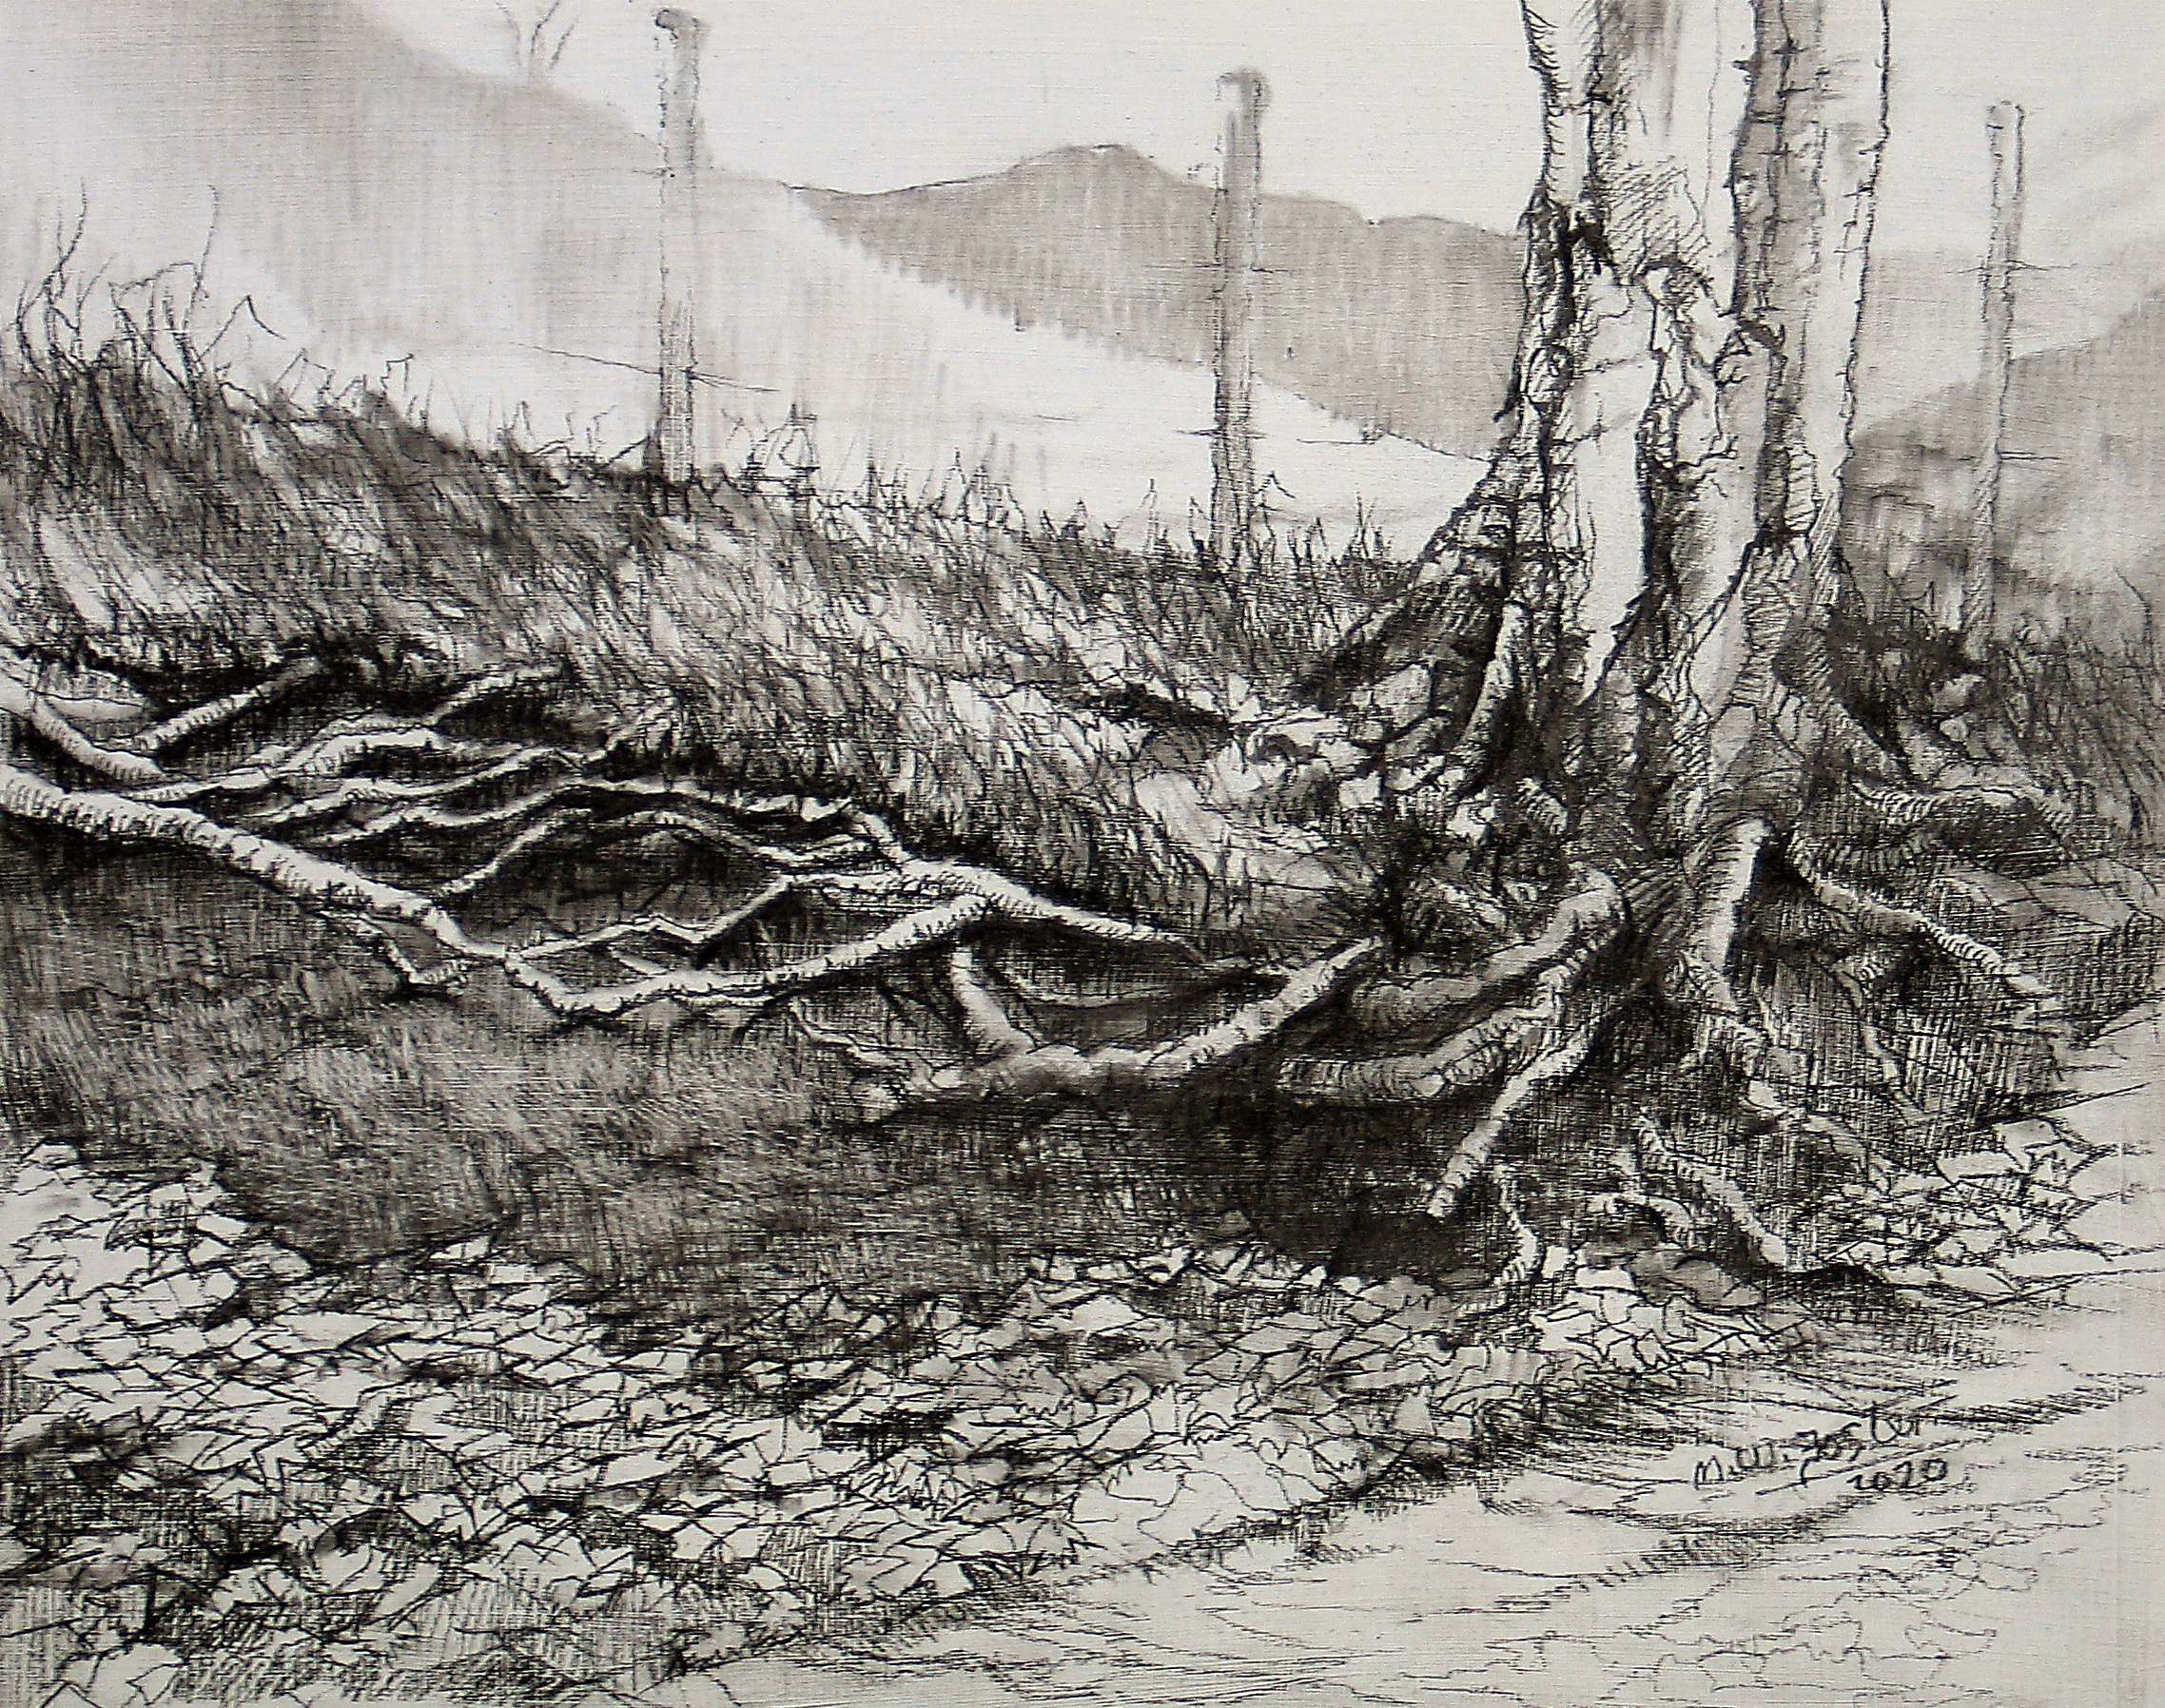 Batch Valley (charcoal)